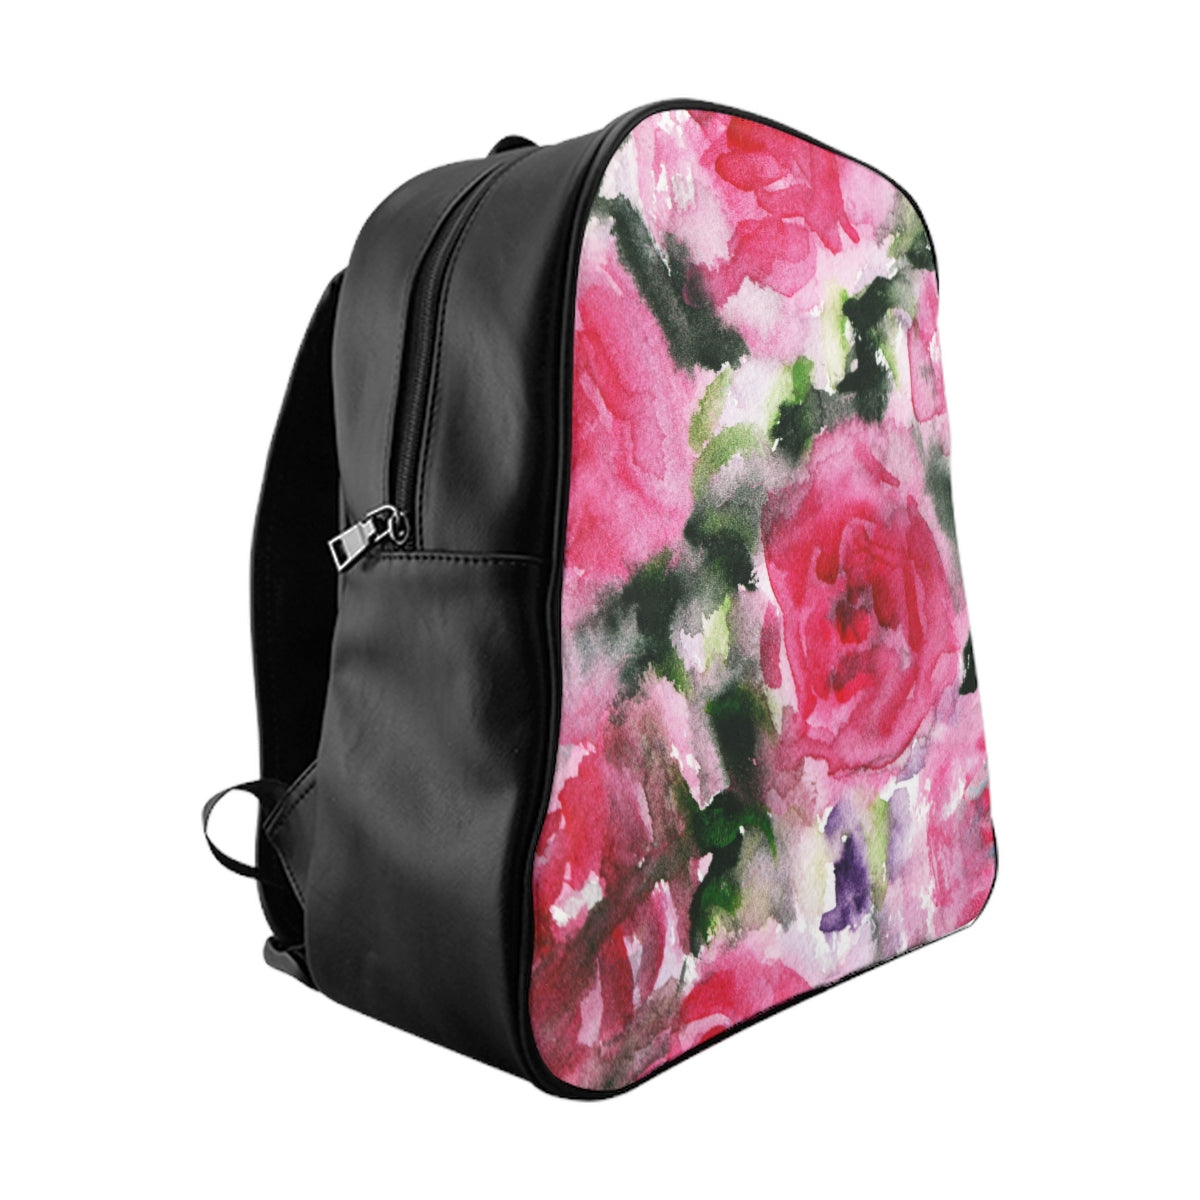 Round Red Pink Abstract Watercolor Rose Floral Print Designer School Backpack Bag-Backpack-Large-Heidi Kimura Art LLC